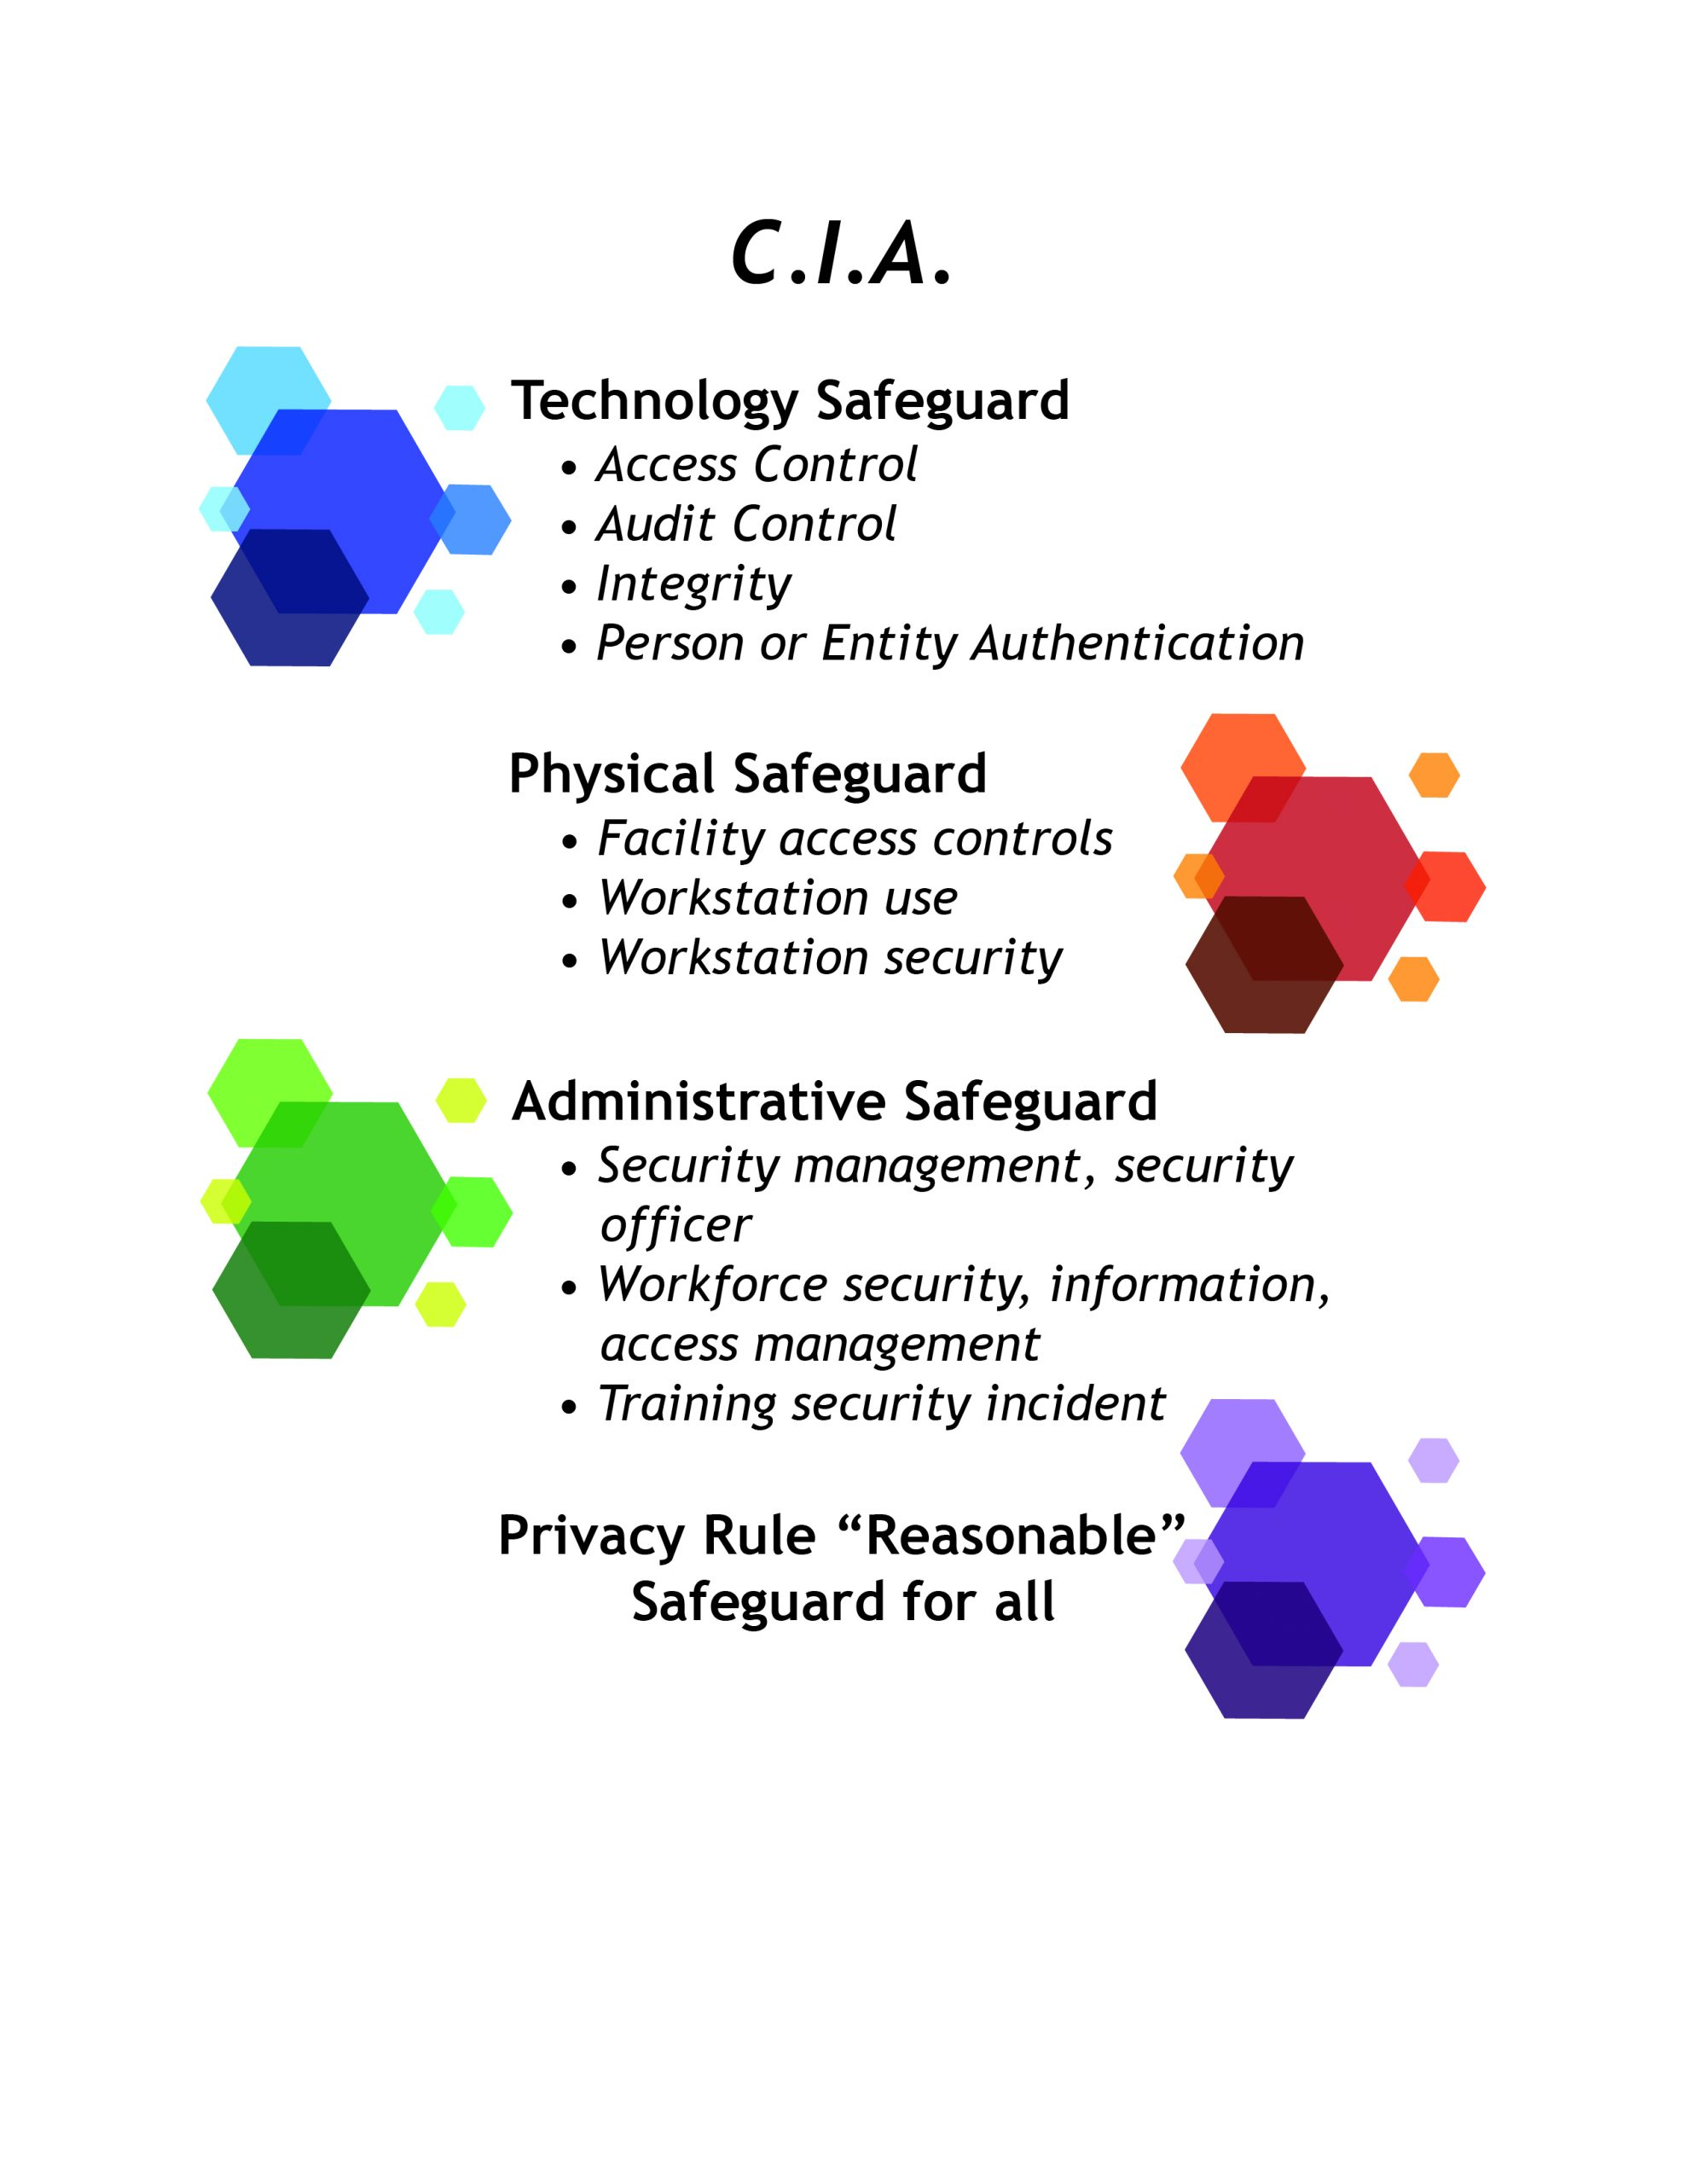 Graphic listing HIPAA CIA requirements